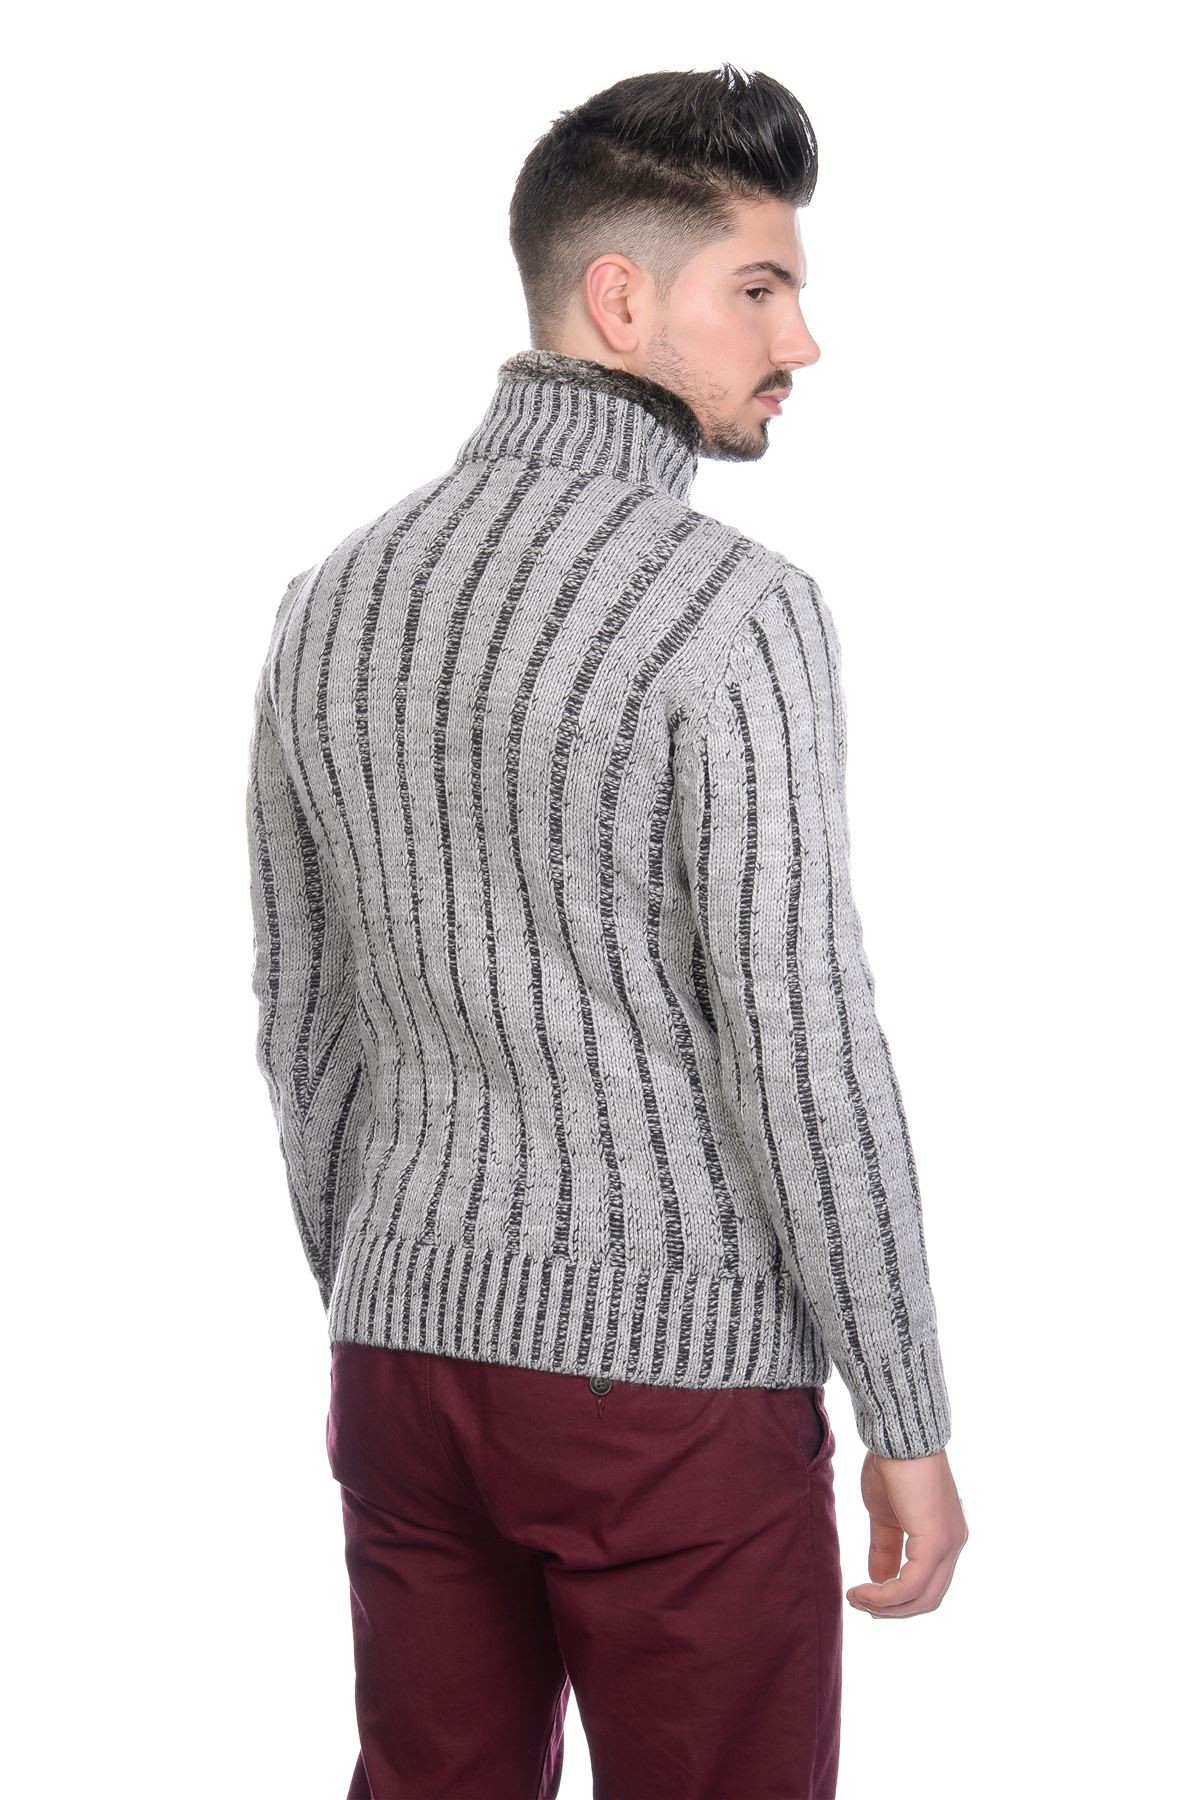 Mens Cable Knit Cardigan Beautiful Bnwt Mens Designer Cable Knit Jumper Cardigan Sweater with Of New 45 Models Mens Cable Knit Cardigan